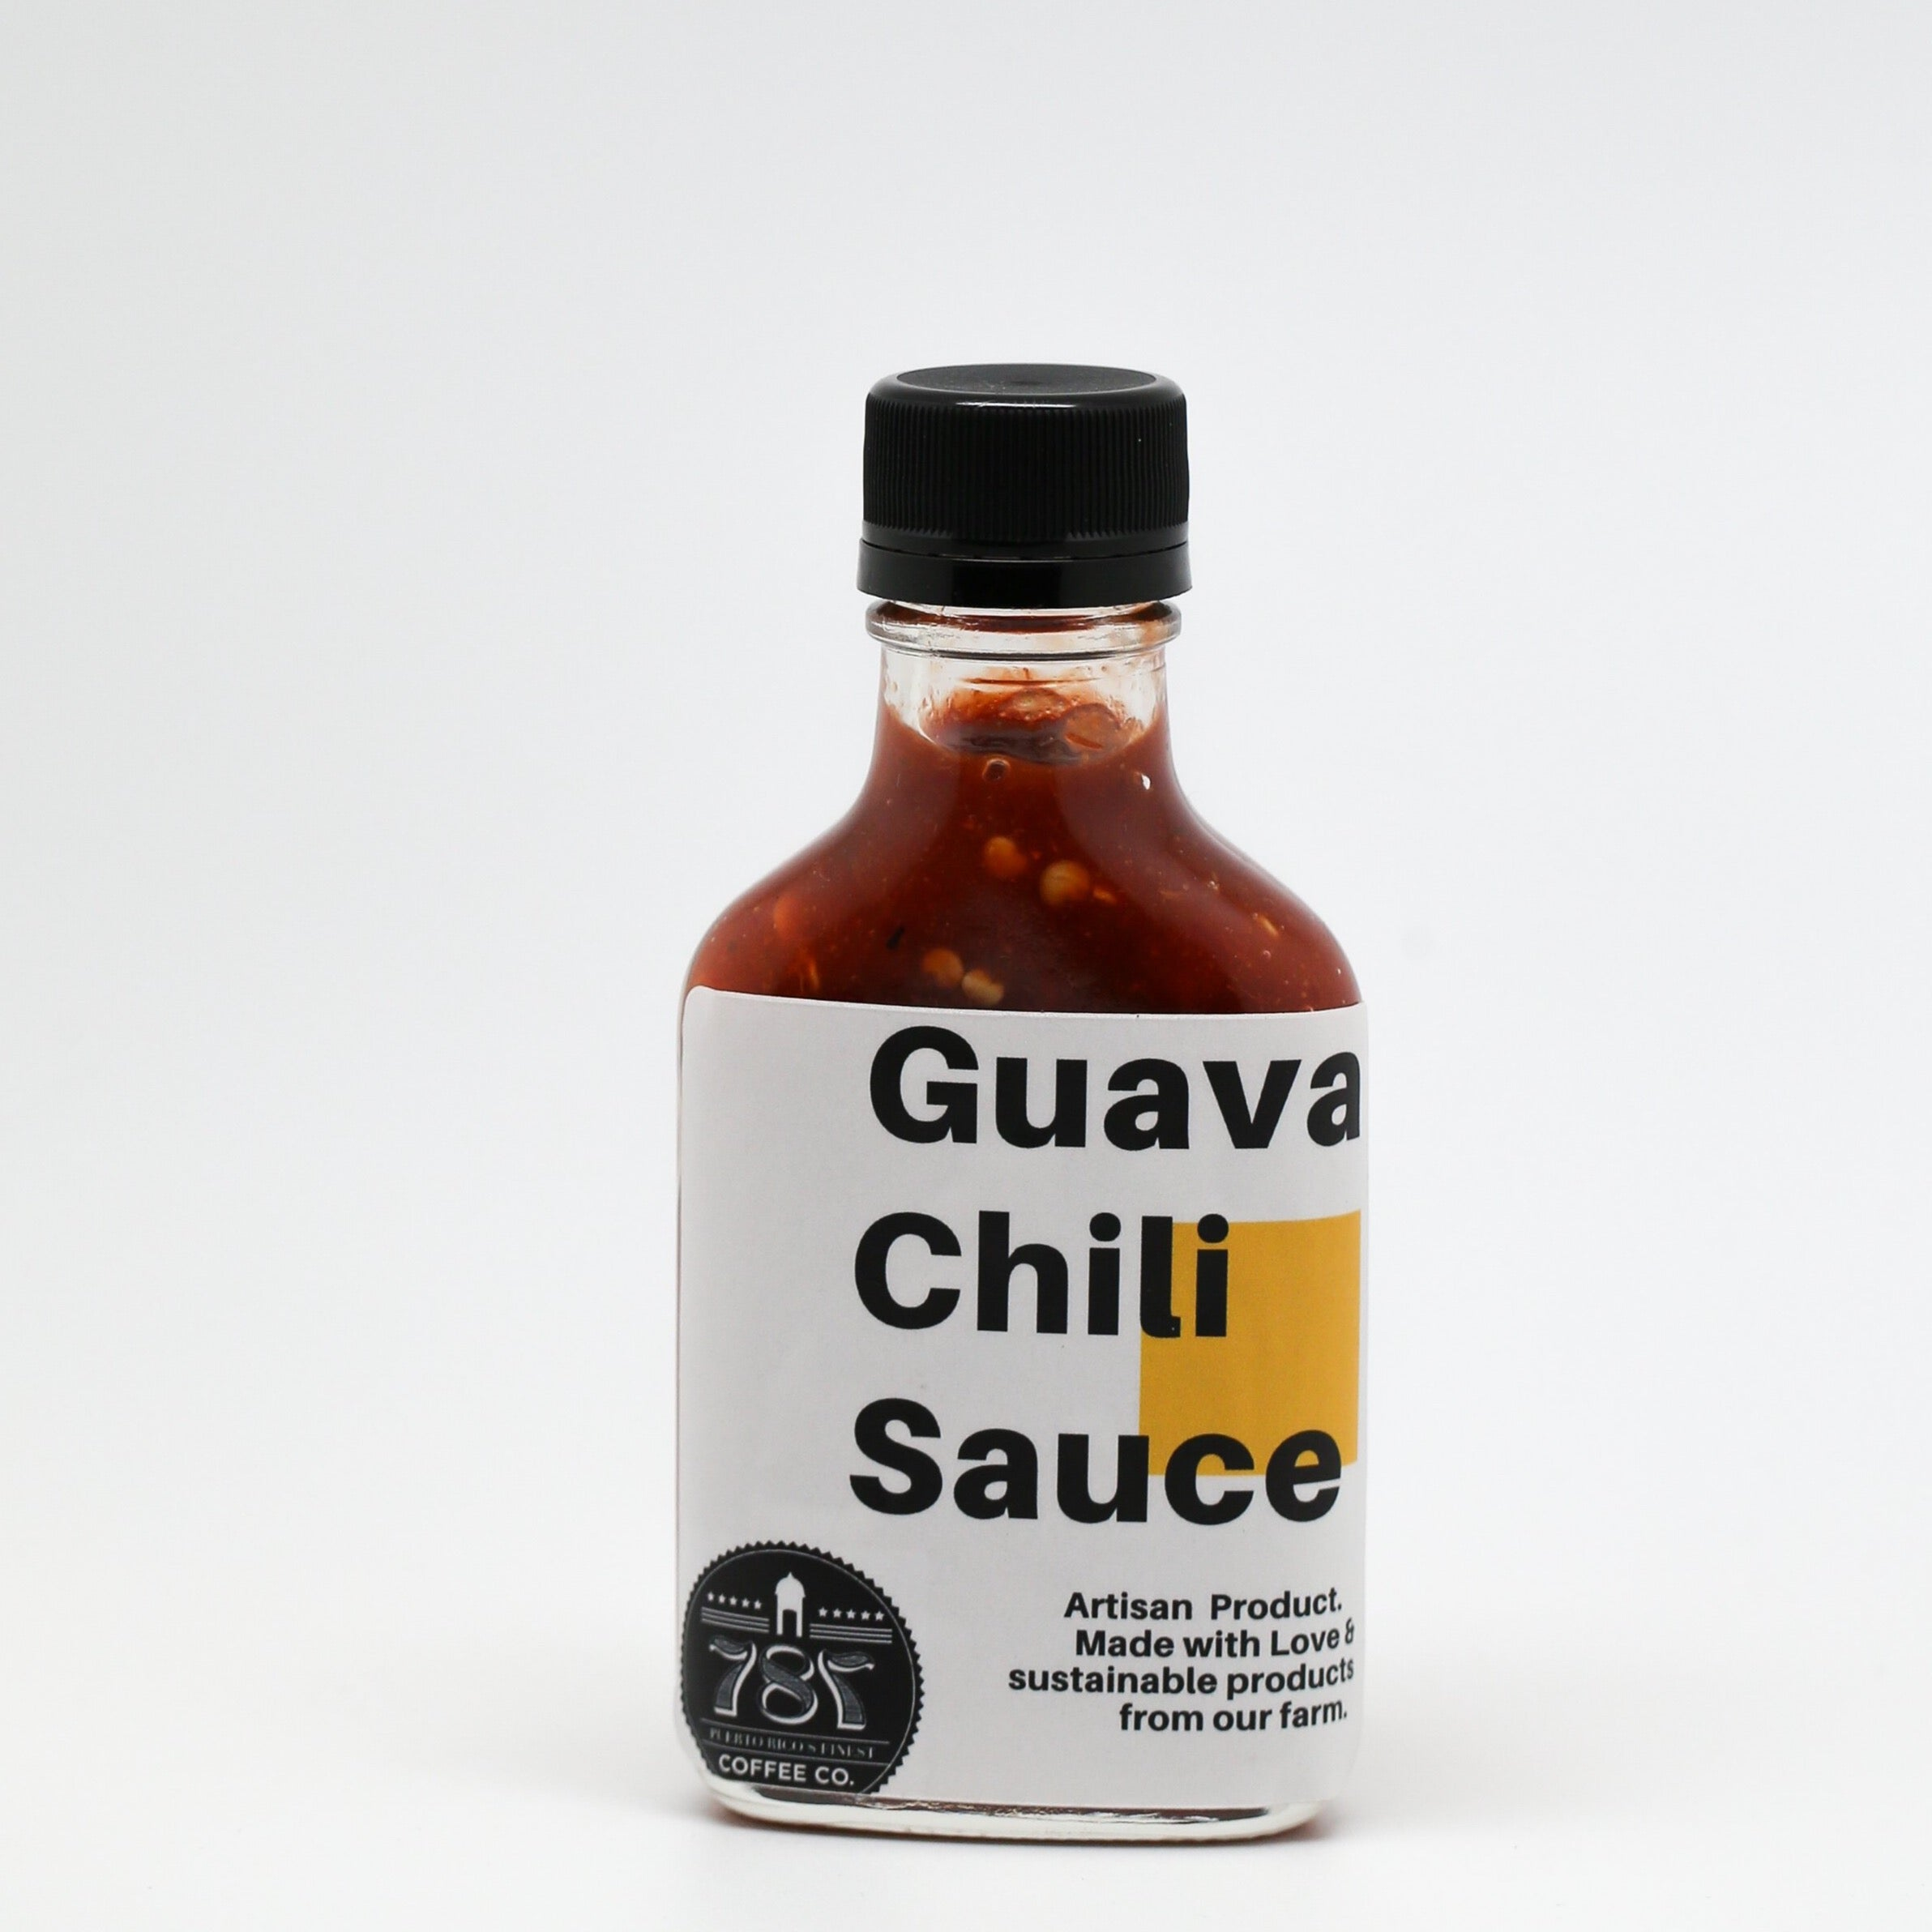 guava chili sauce artisan product made by 787 coffee it is a delicious chili sauce